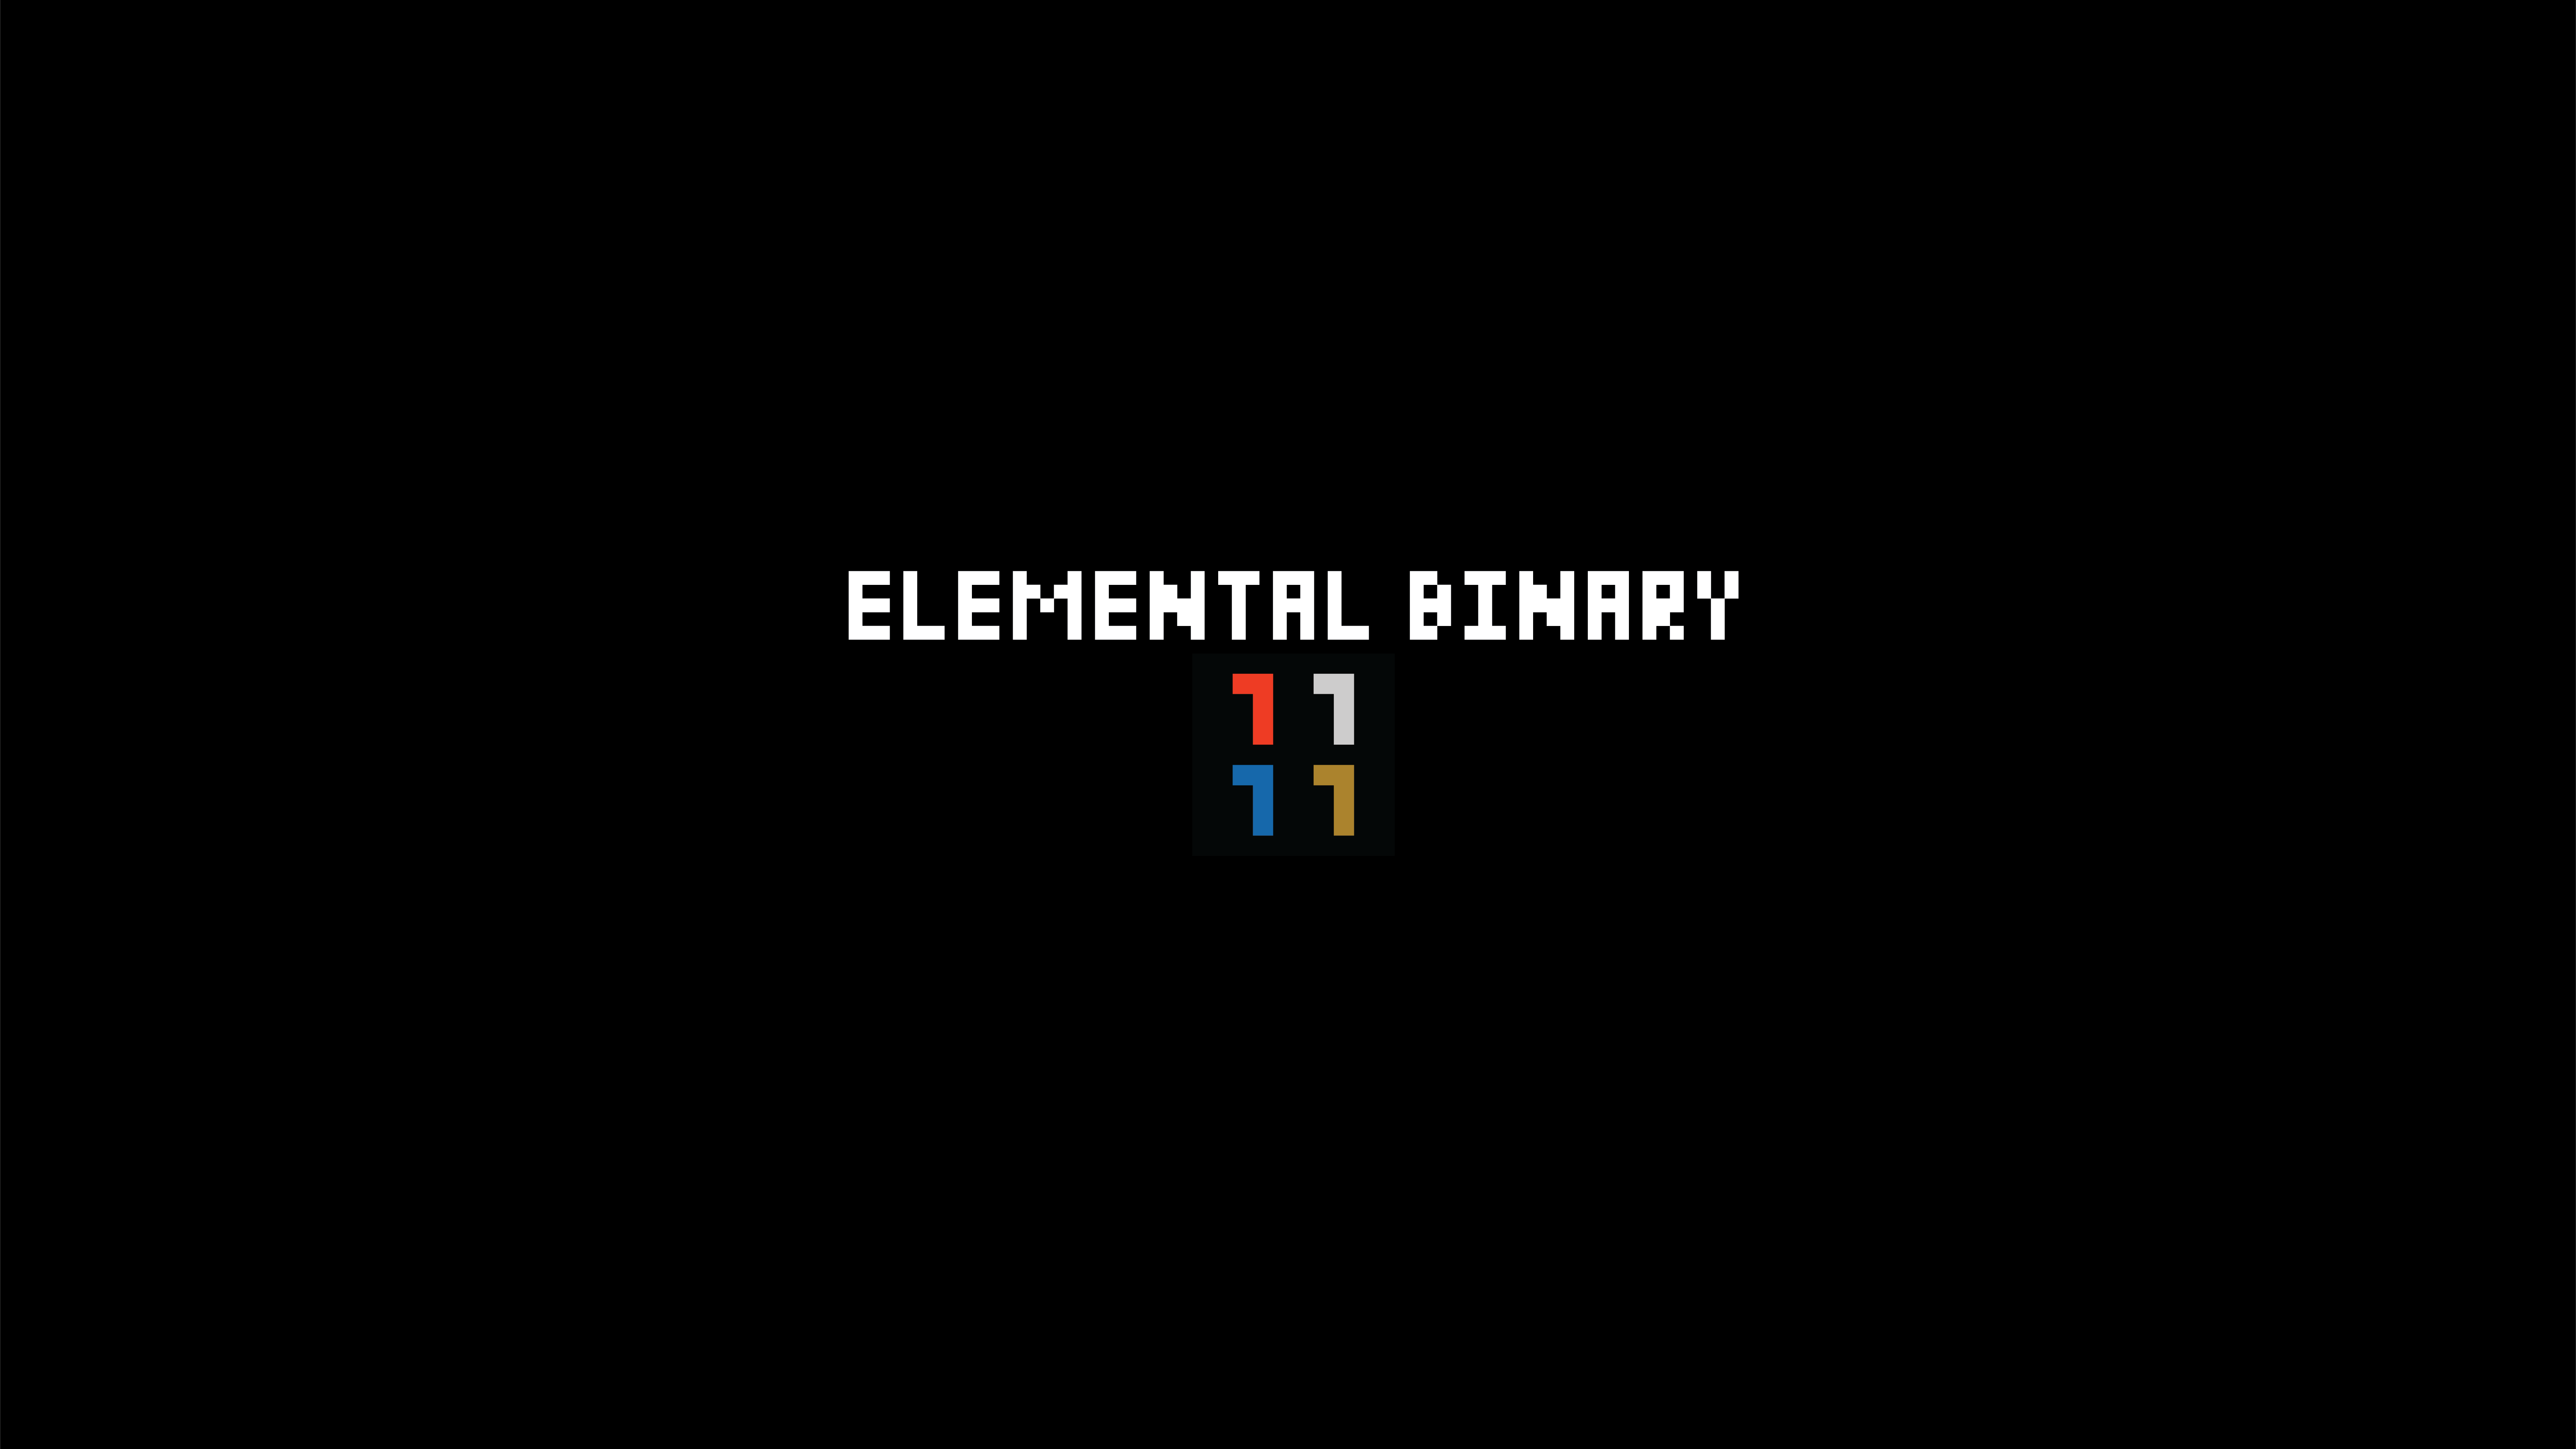 Flipped by elementalbinary